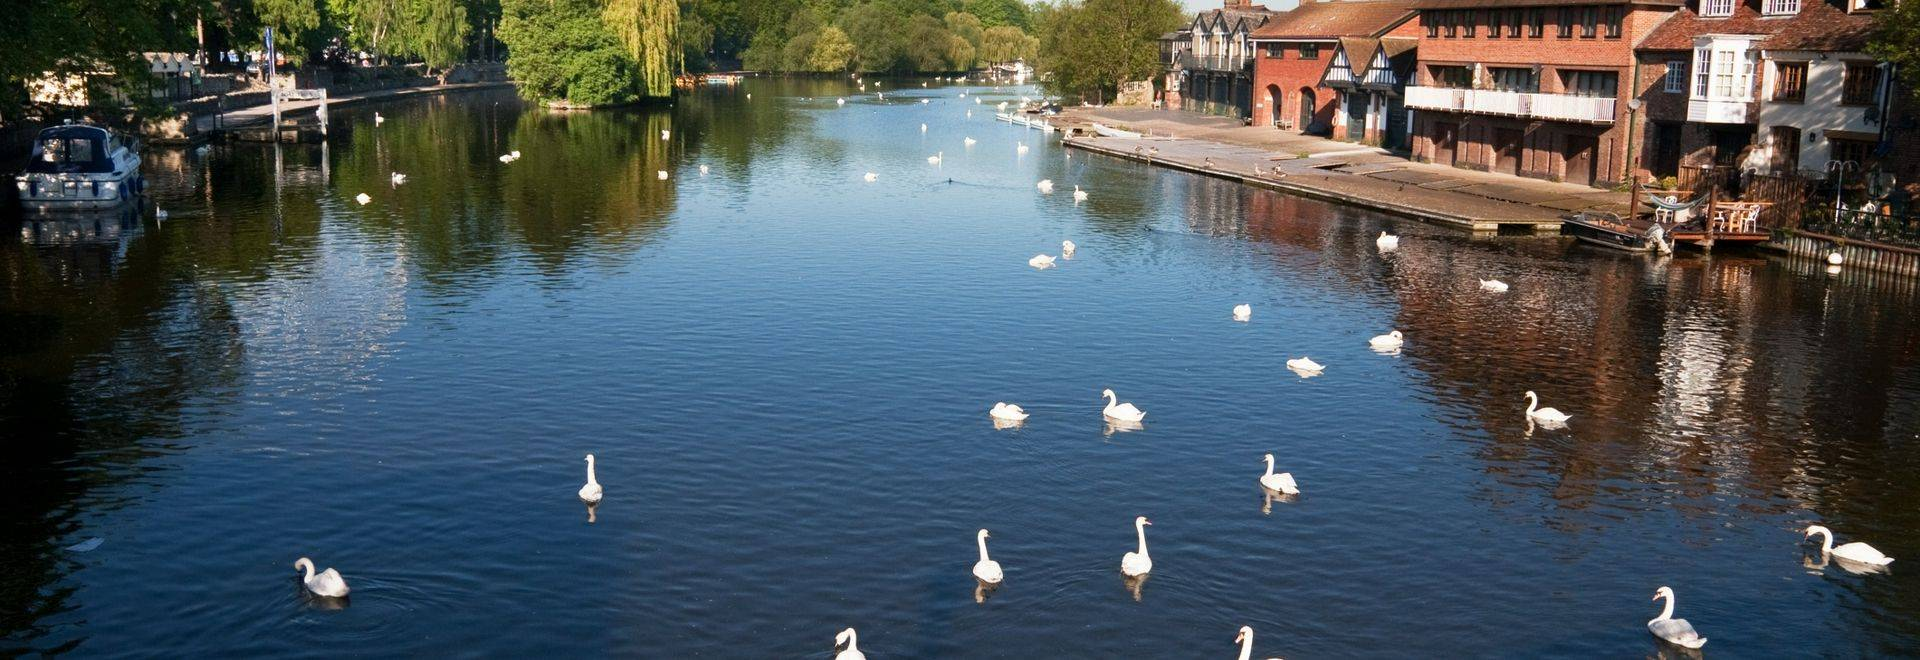 Swans on the River Thames between Windsor and Eton, taken from Eton Bridge looking East towards the Windsor Wheel.